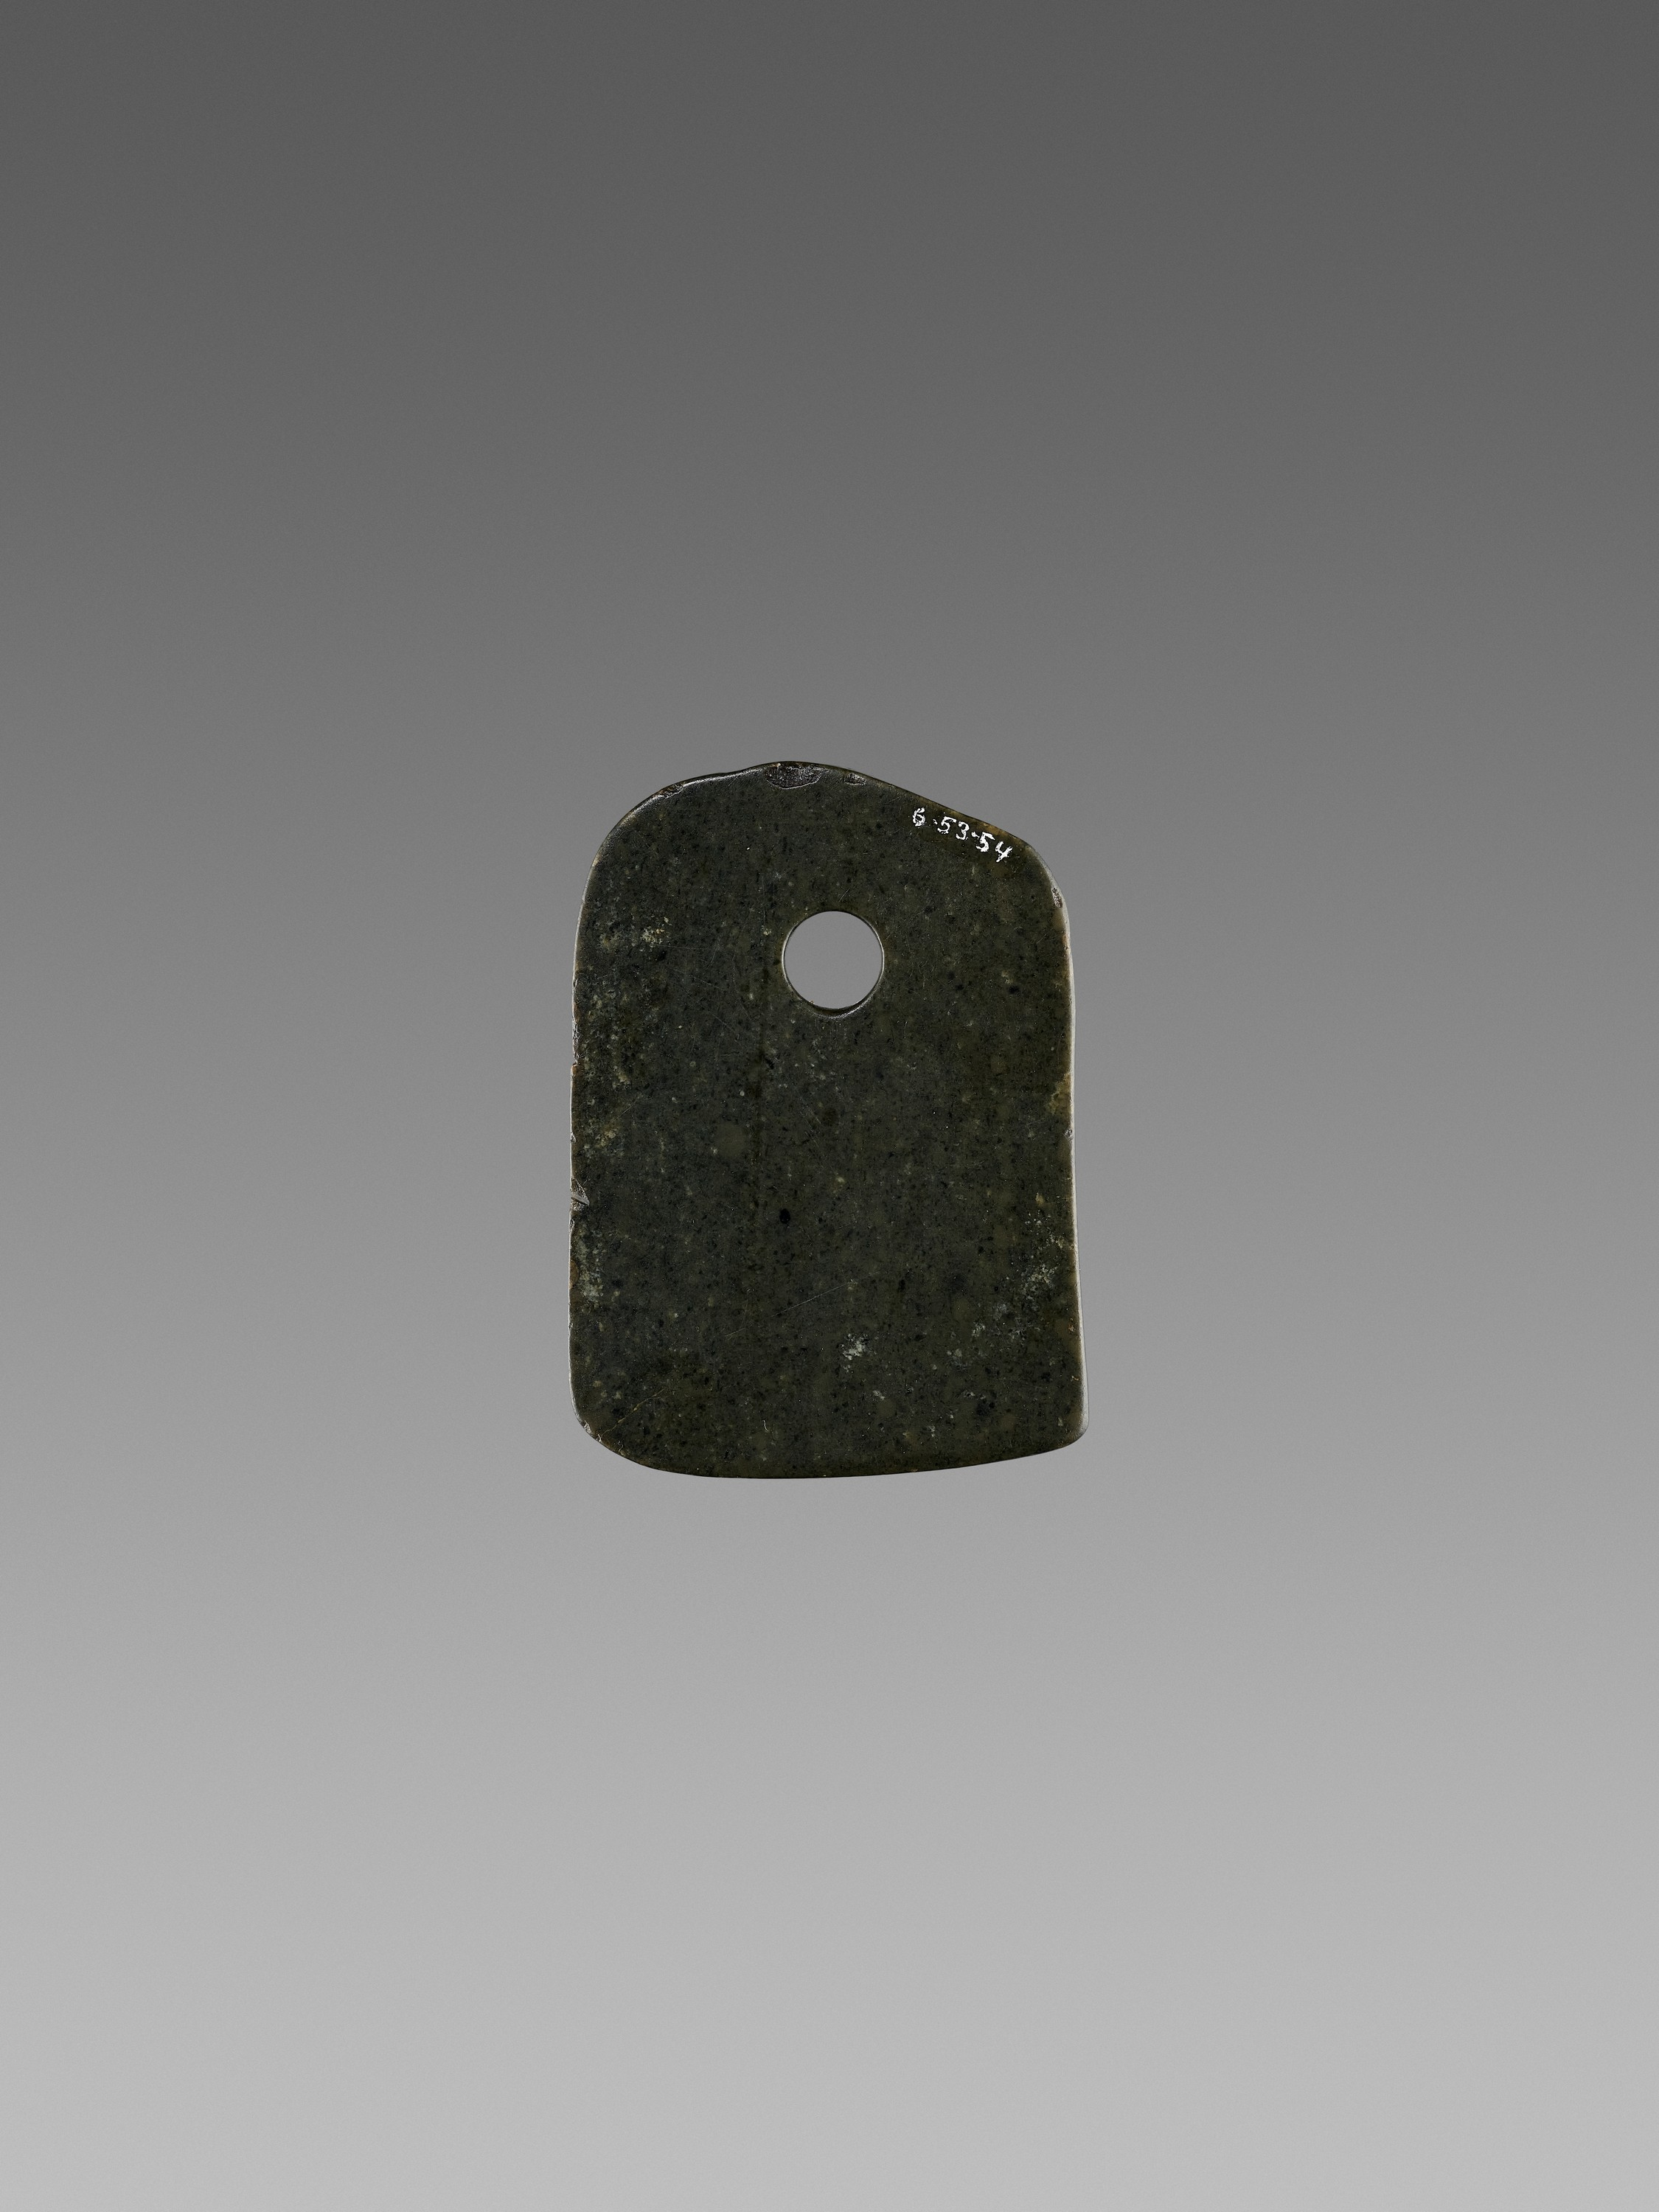 A BLACK JADE AXE, 2ND MILLENNIUM BC - Image 3 of 7